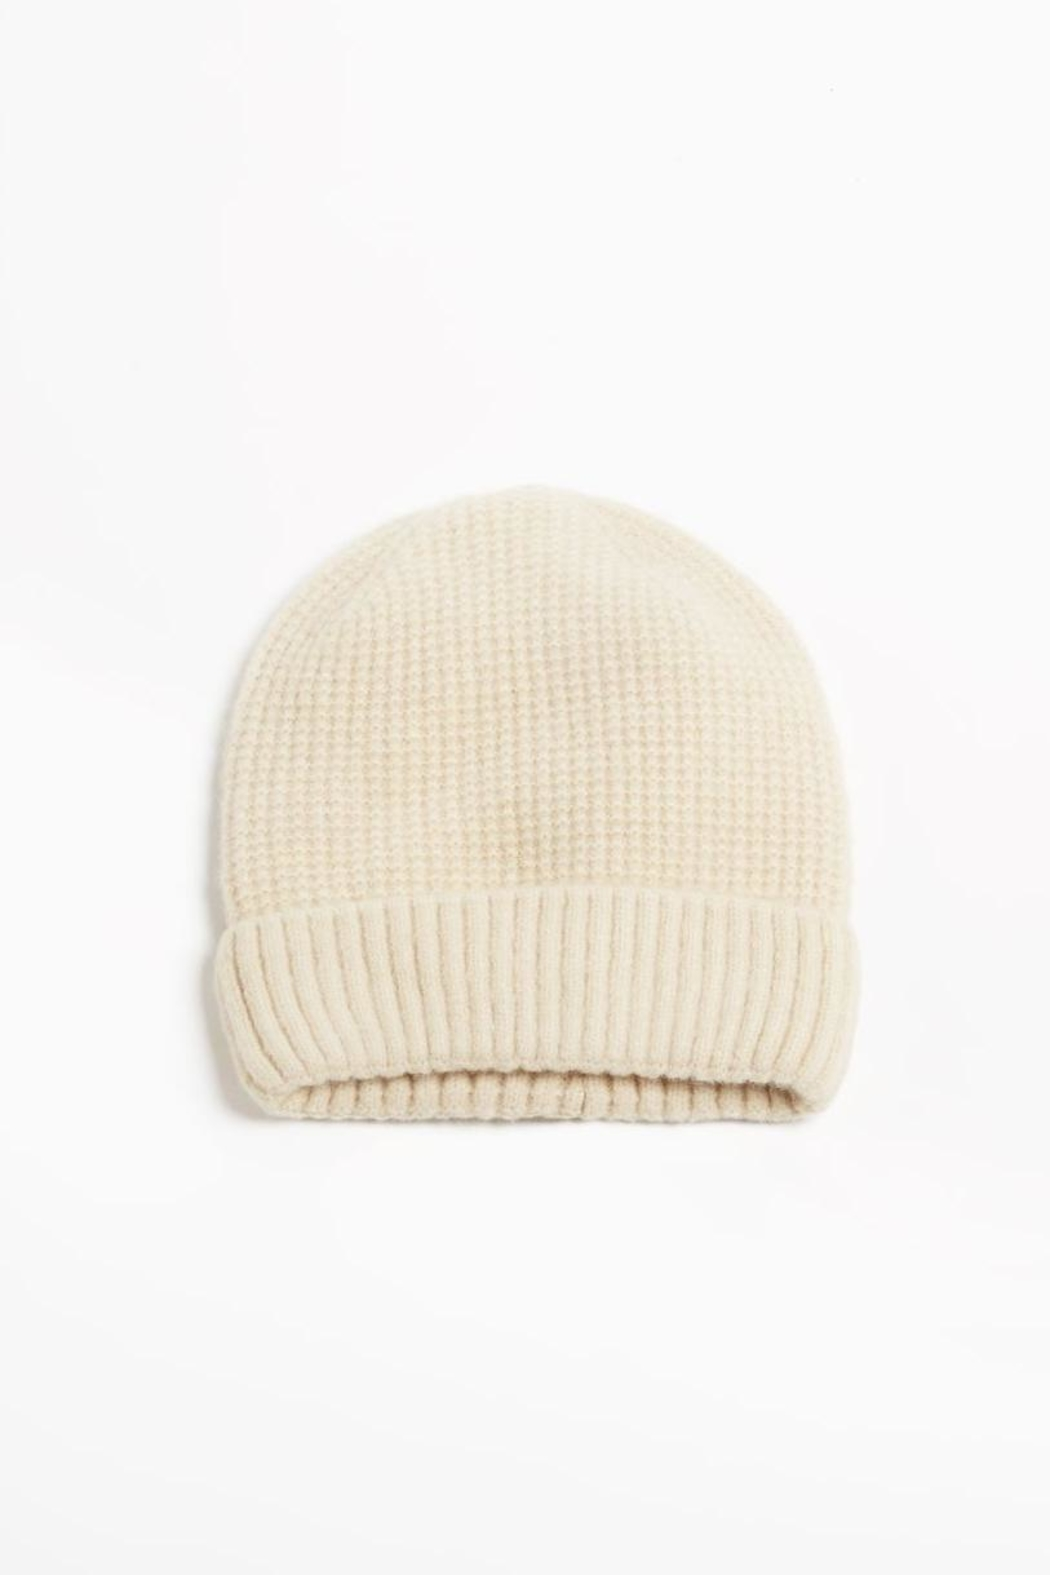 Look by M Waffle Knit Beanie from New Jersey by Across The Way ... 29c9d2884eb